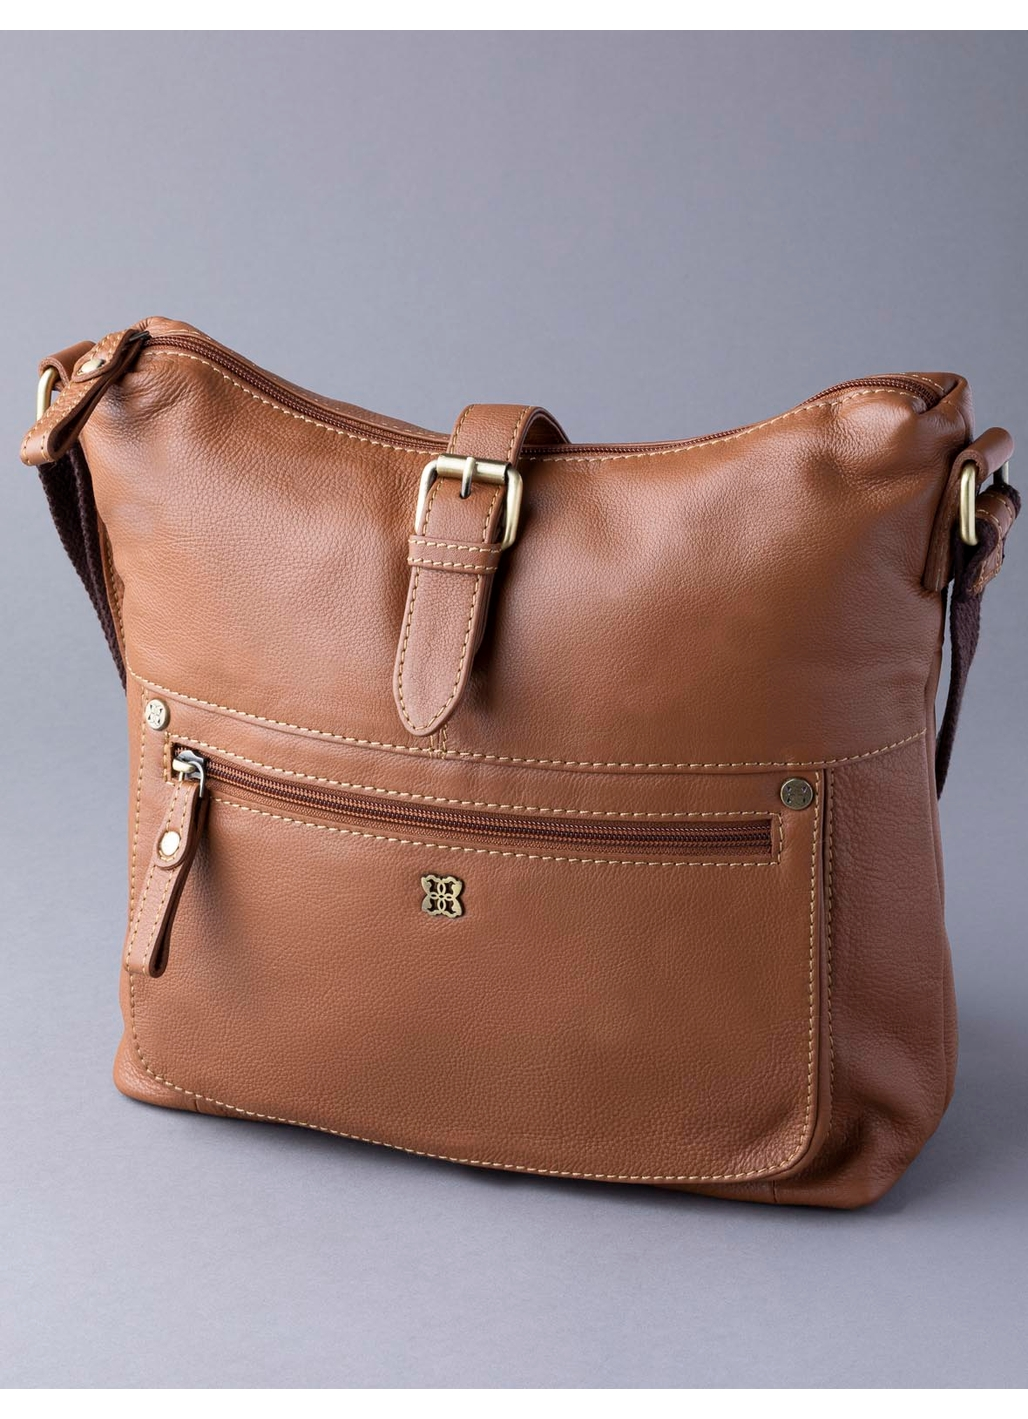 Rickerby Leather Shoulder Bag in Cognac